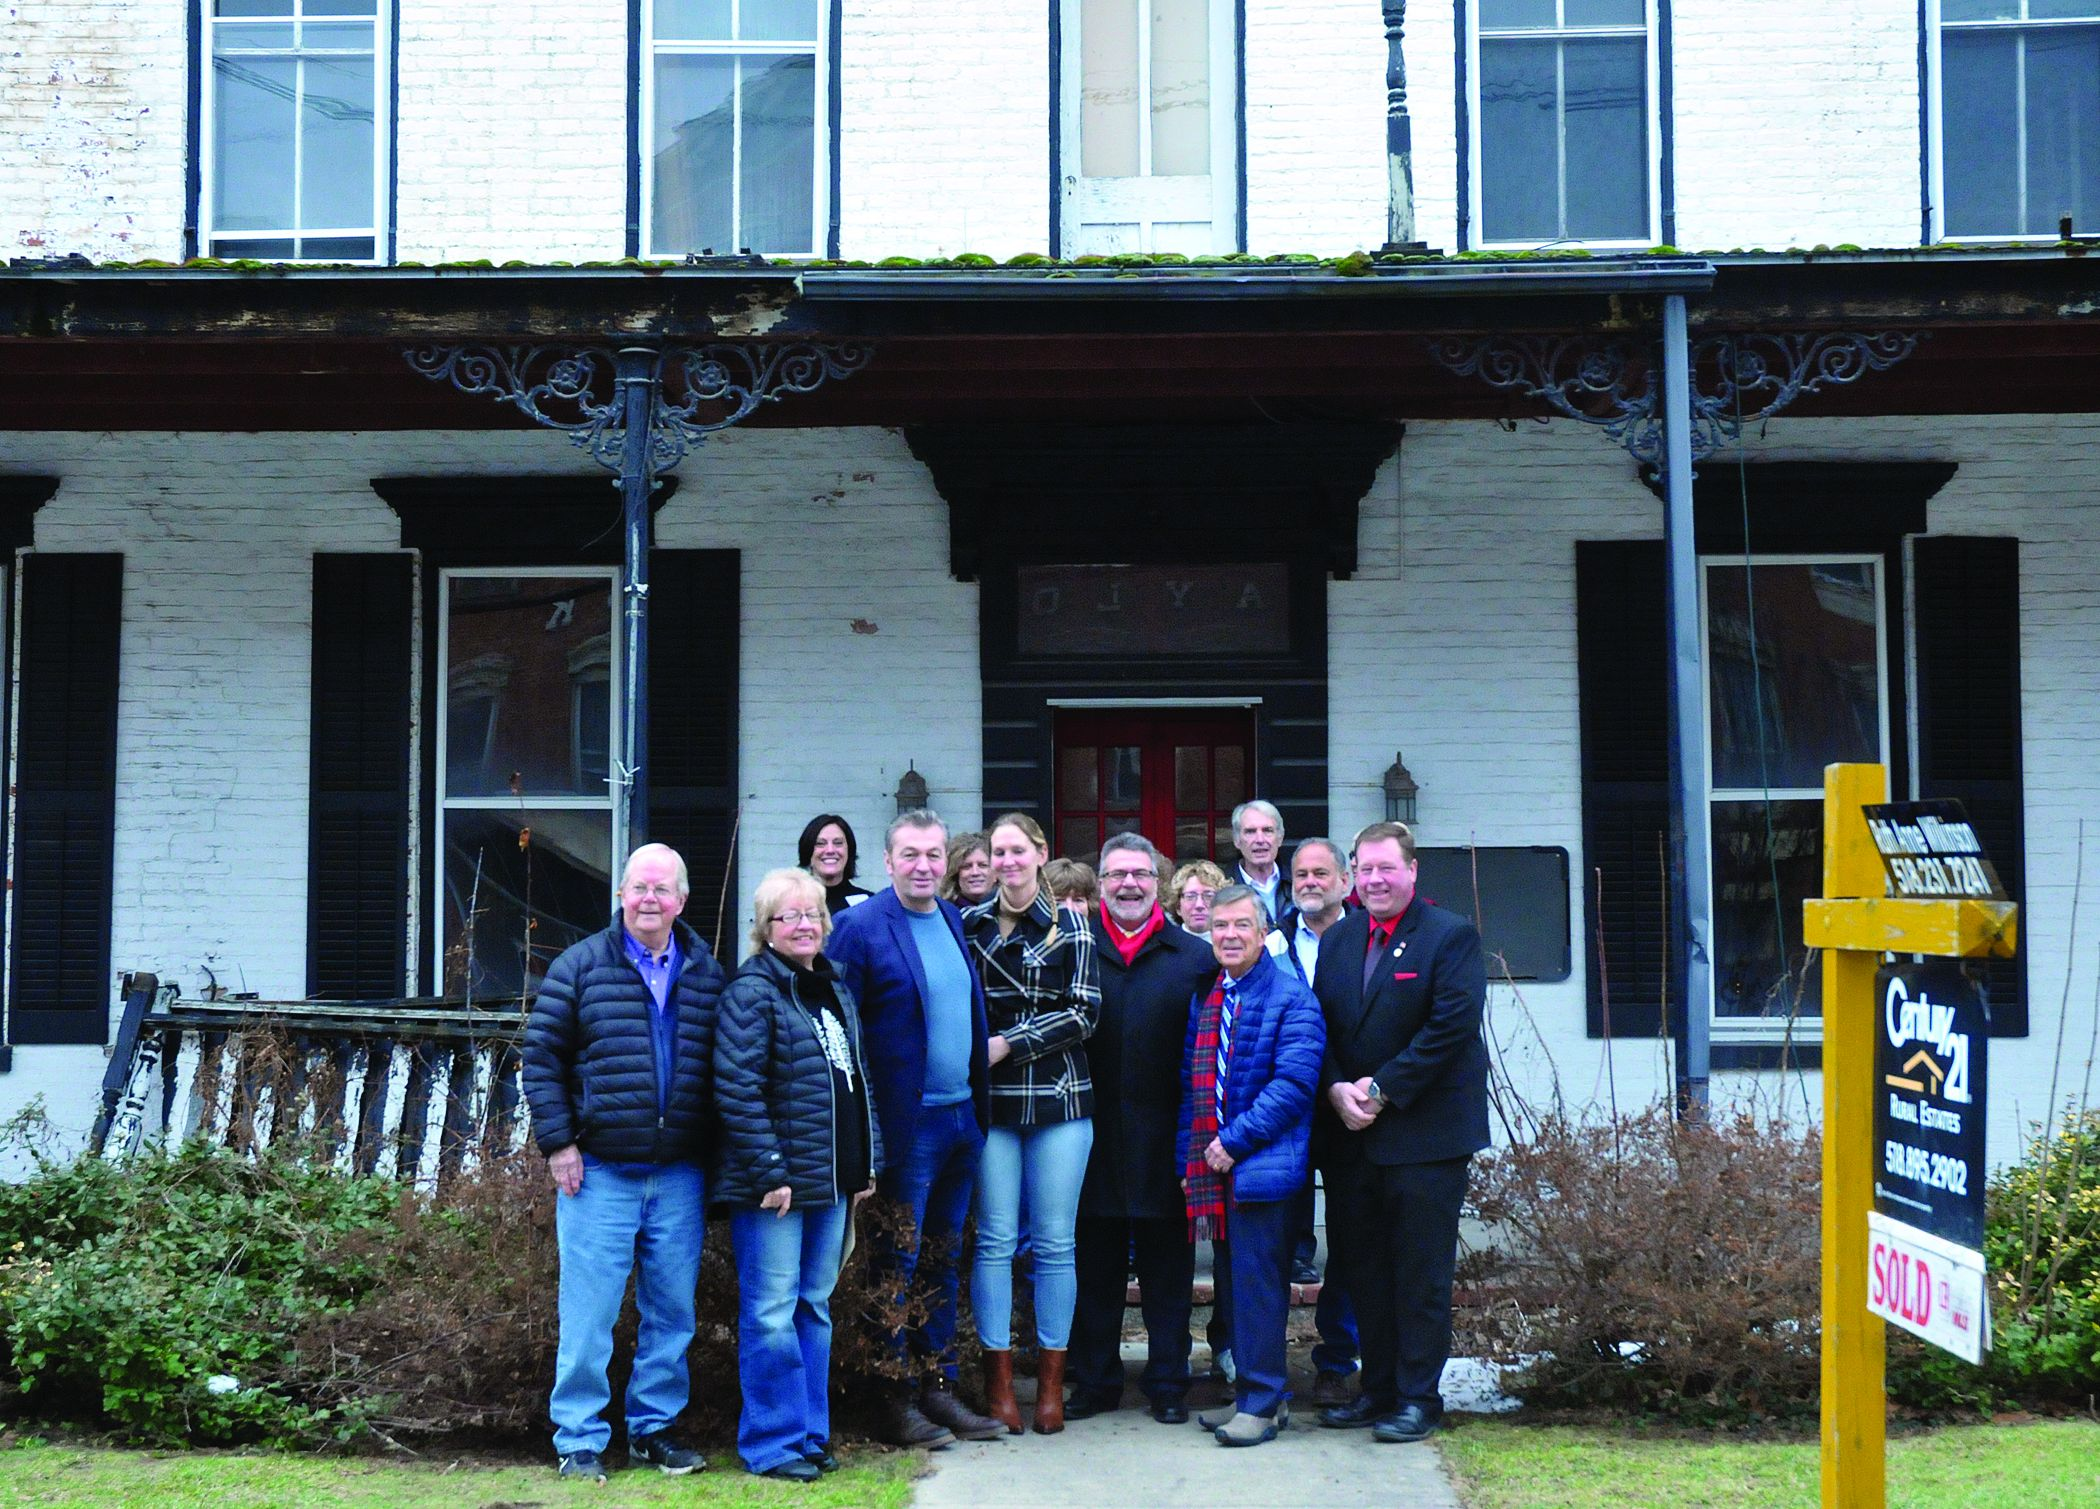 Sold: New owners plan to breathe new life into Parrott House